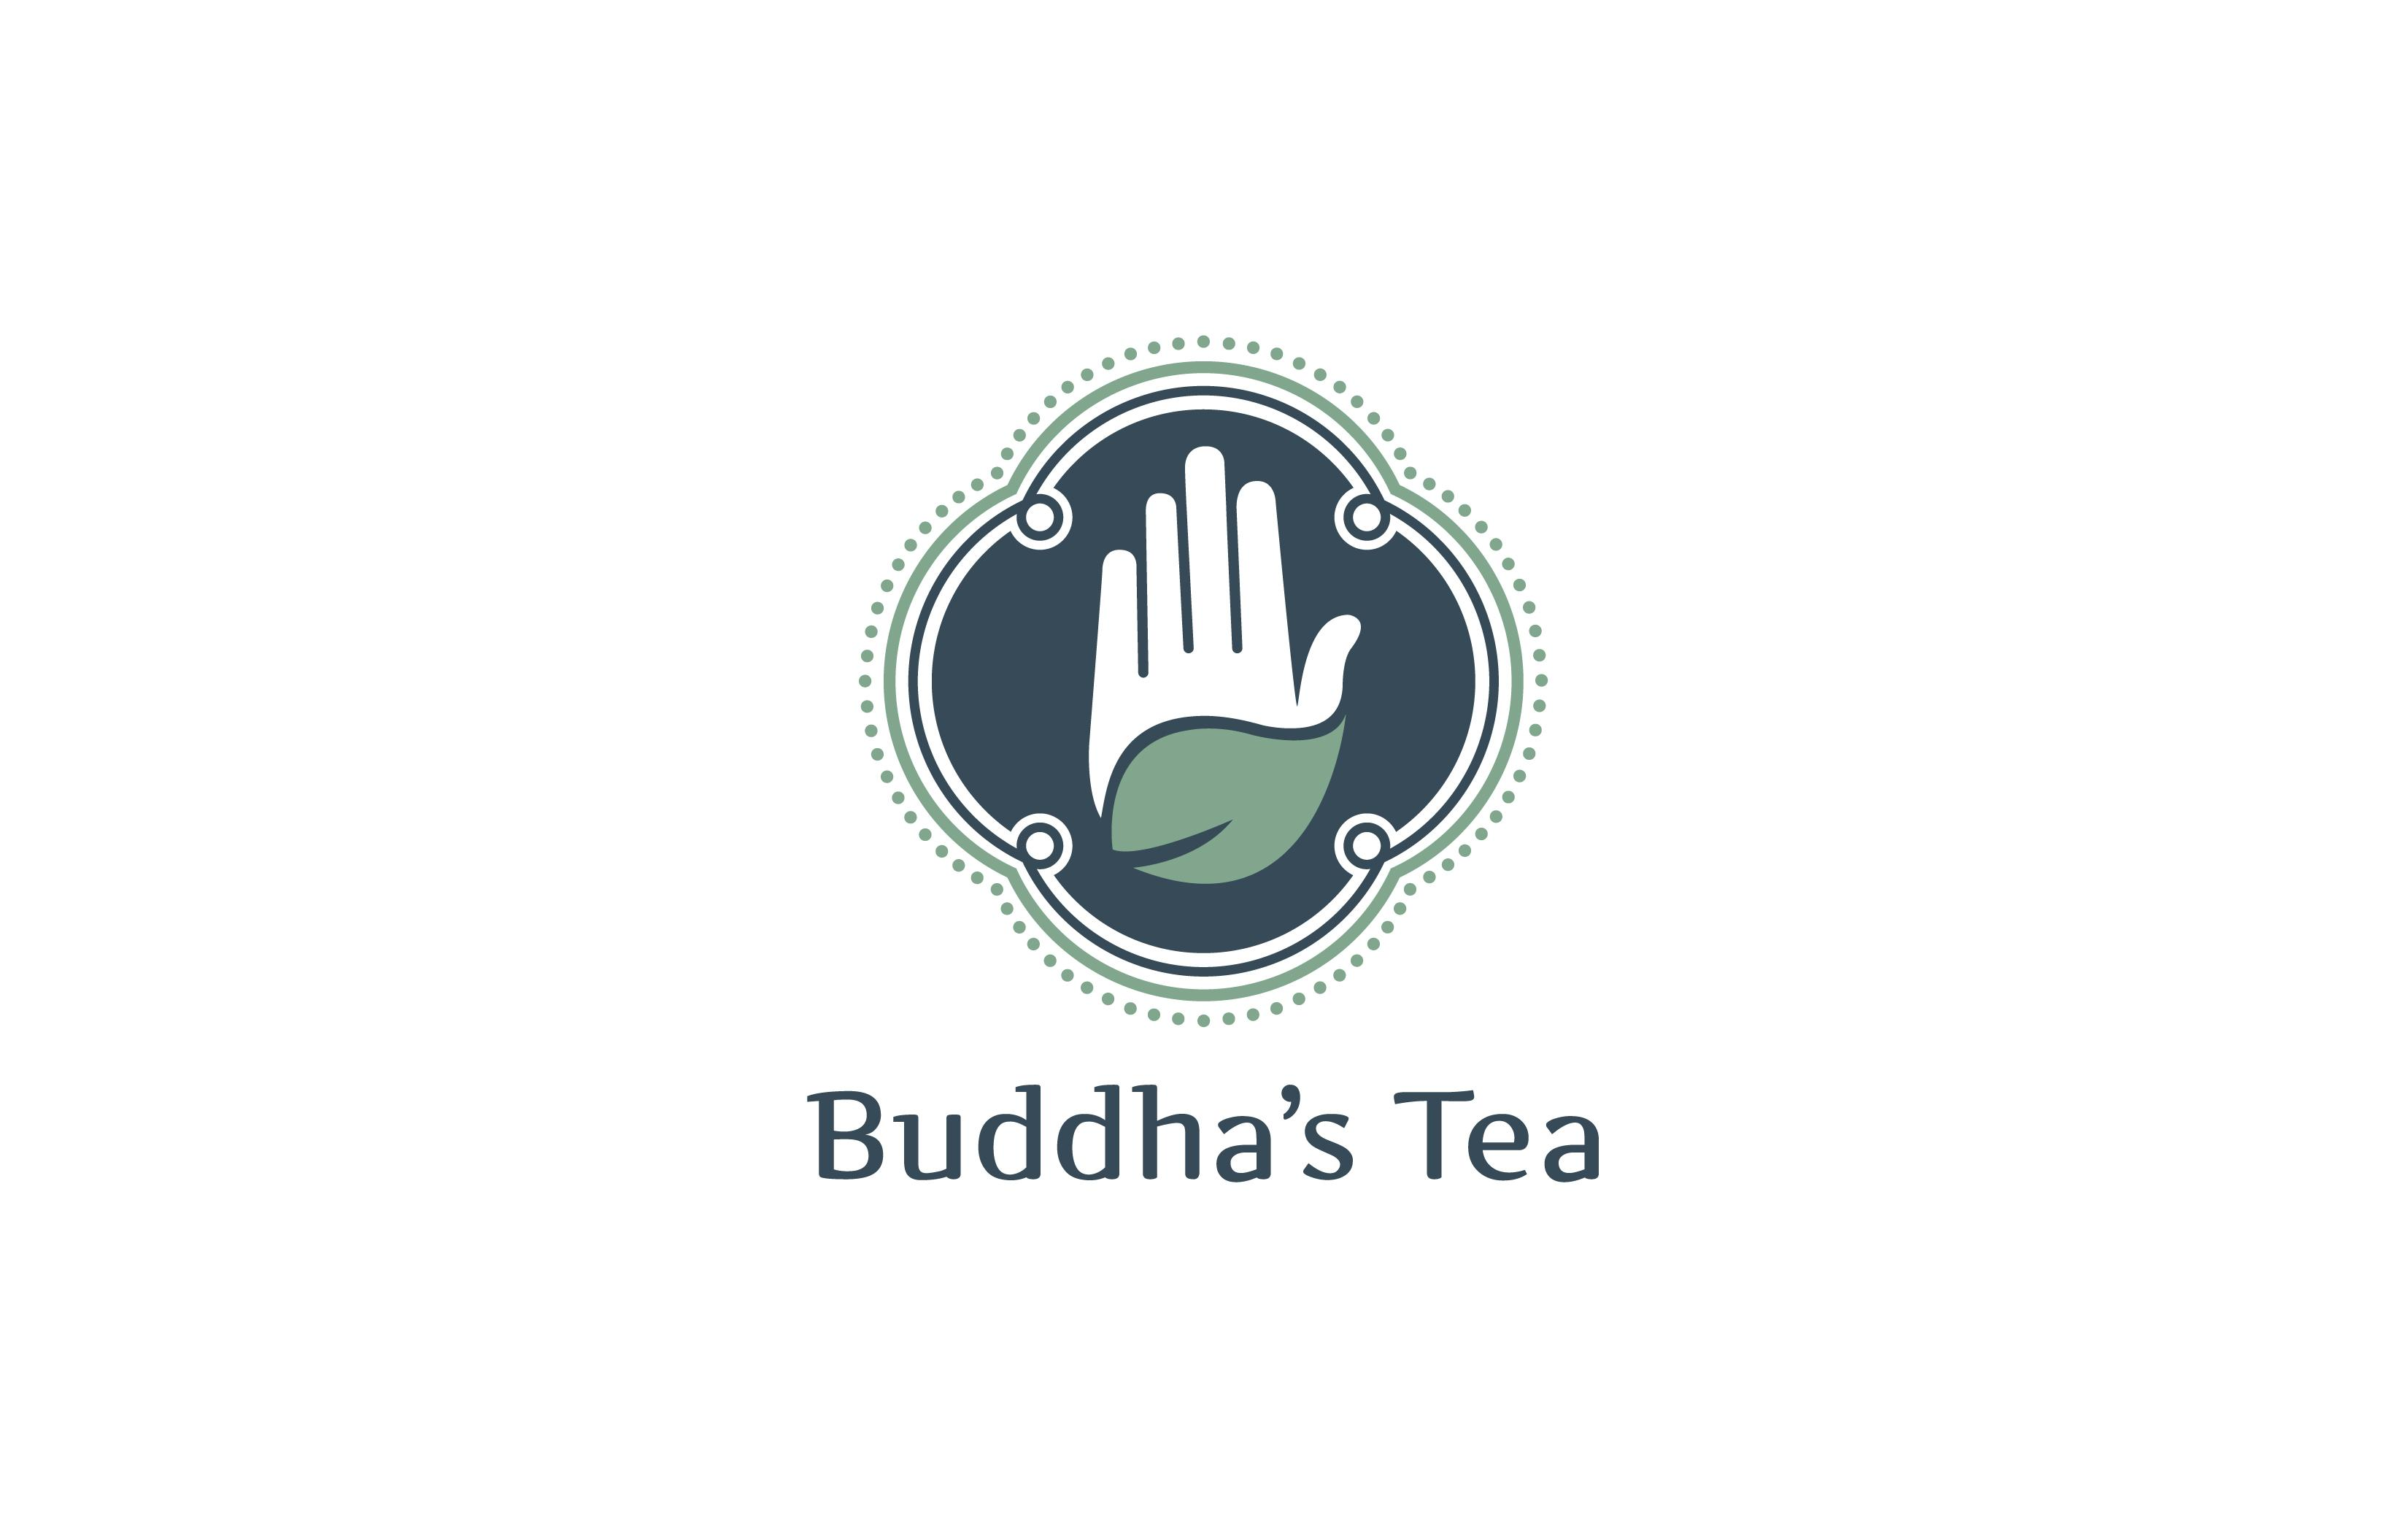 Buddha's Tea (Fictional Project) - image 1 - student project